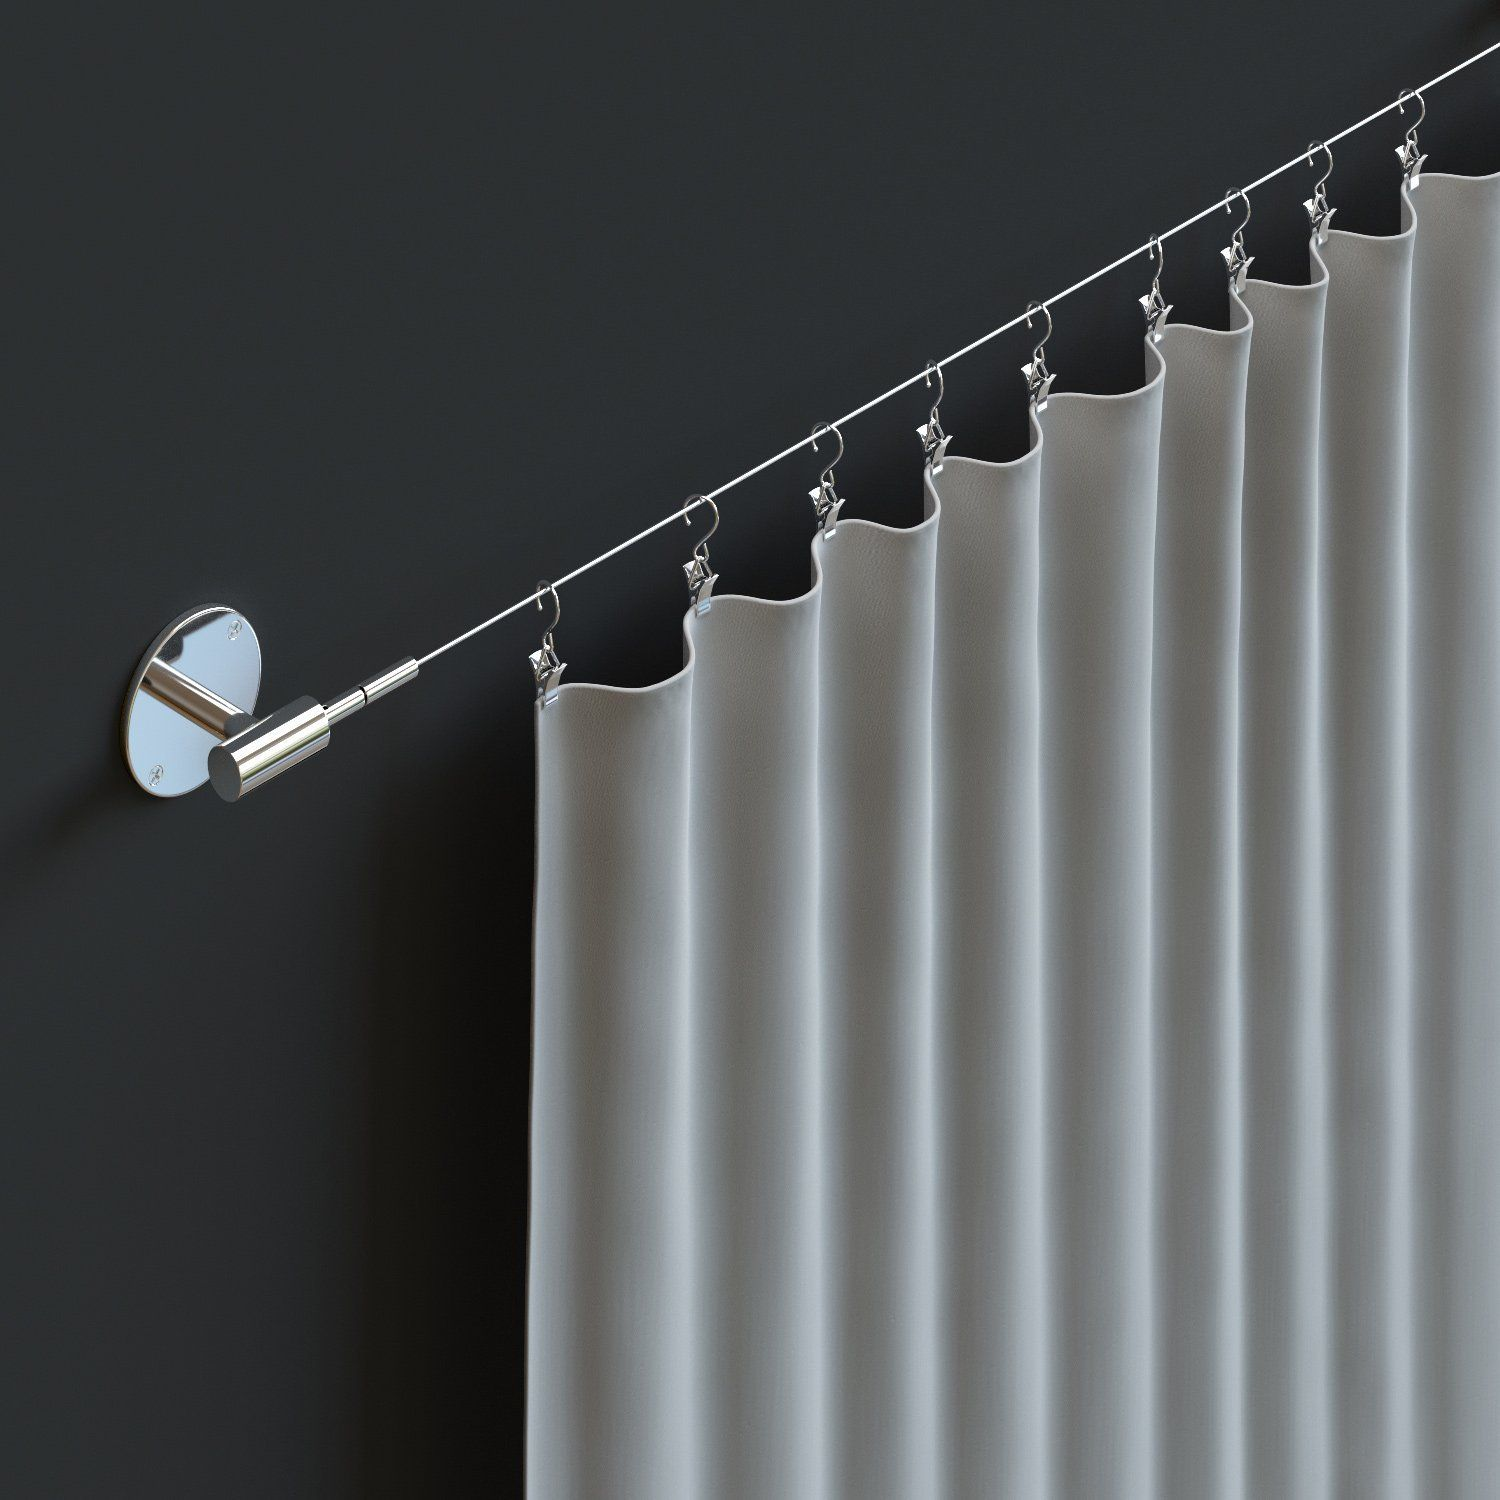 Curtain Bendable Plastic Metal Alloy Rod Flexible Window Curtain Track Poles Ceiling Mounting From Stunning Curtain